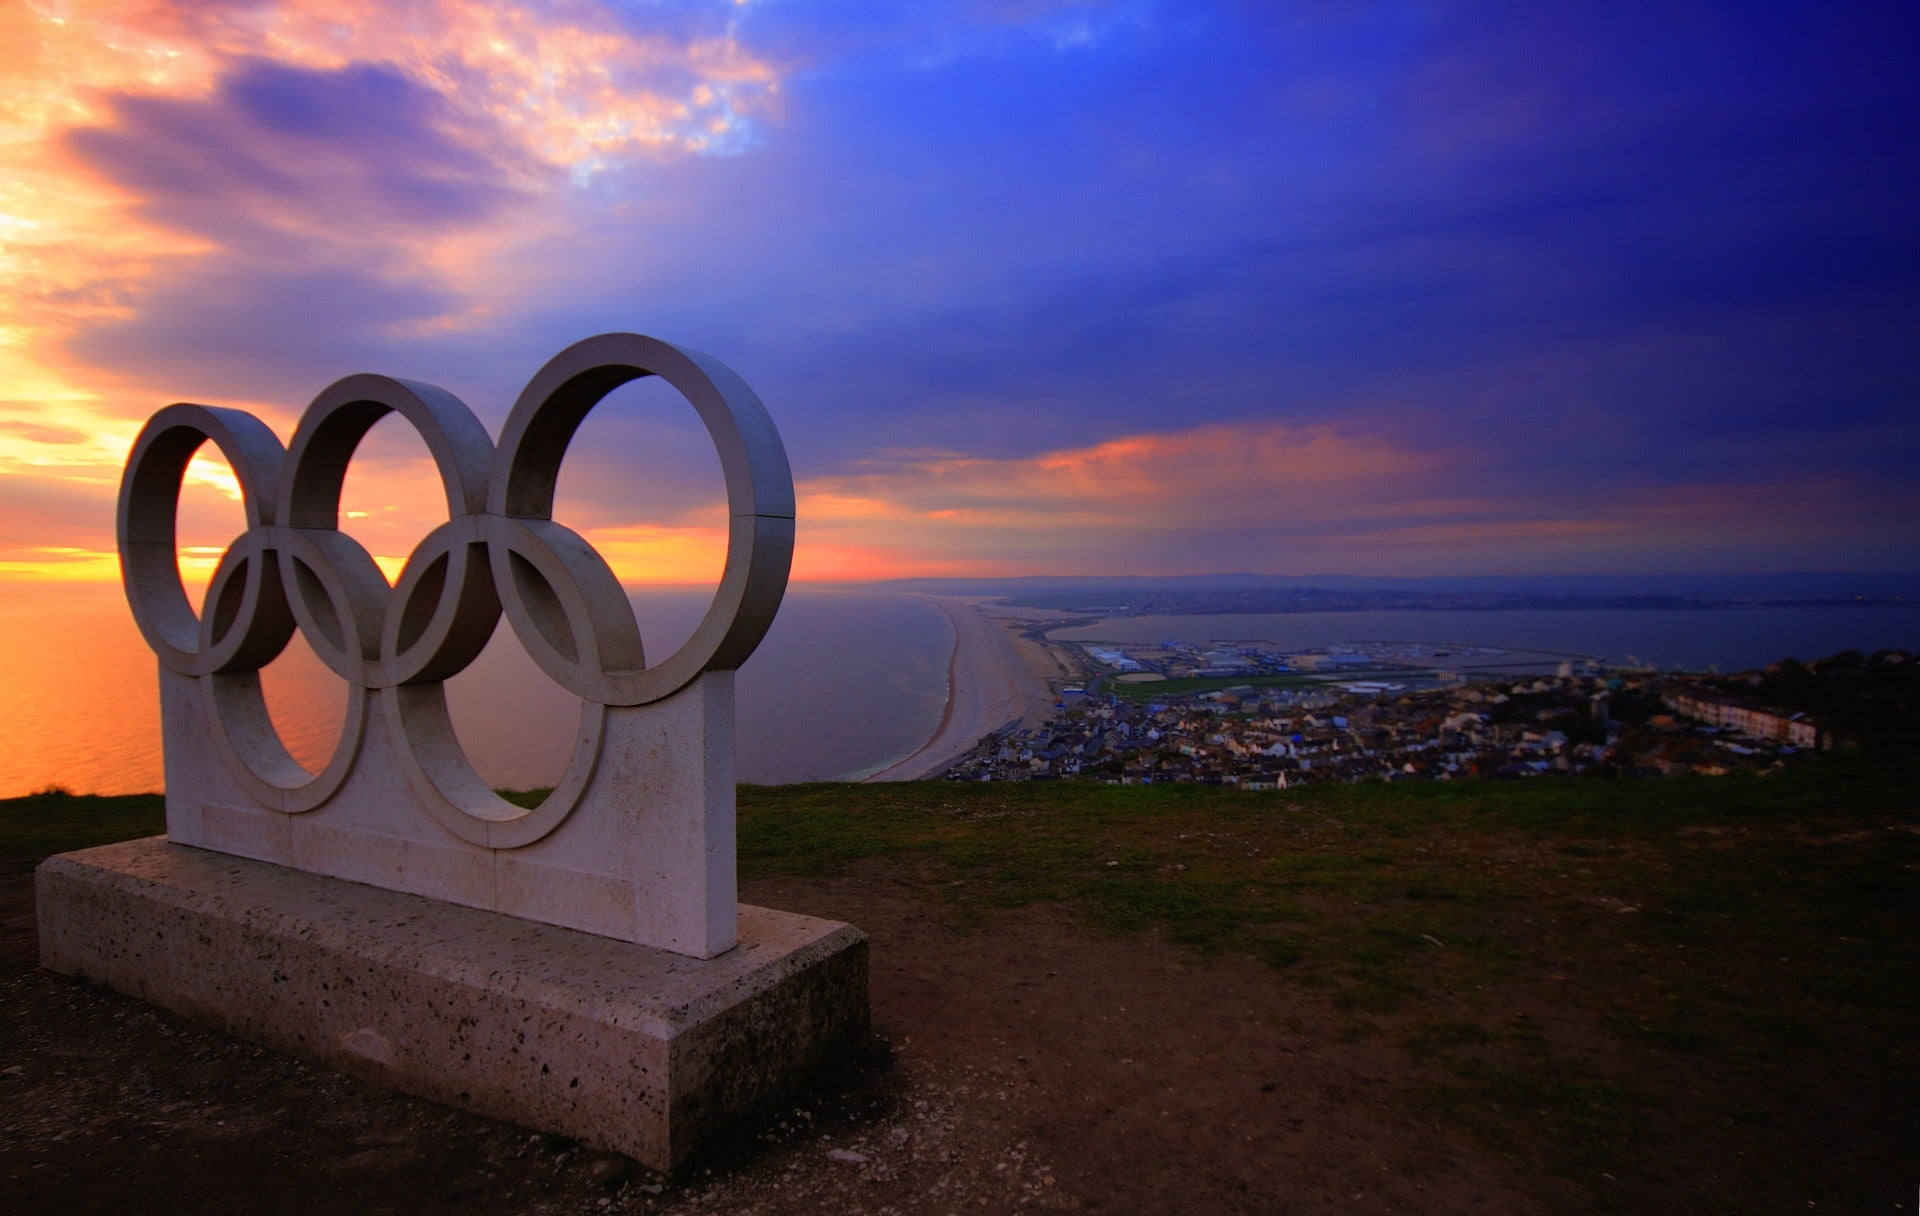 Why Were the Five Colors of the Olympic Rings Chosen?